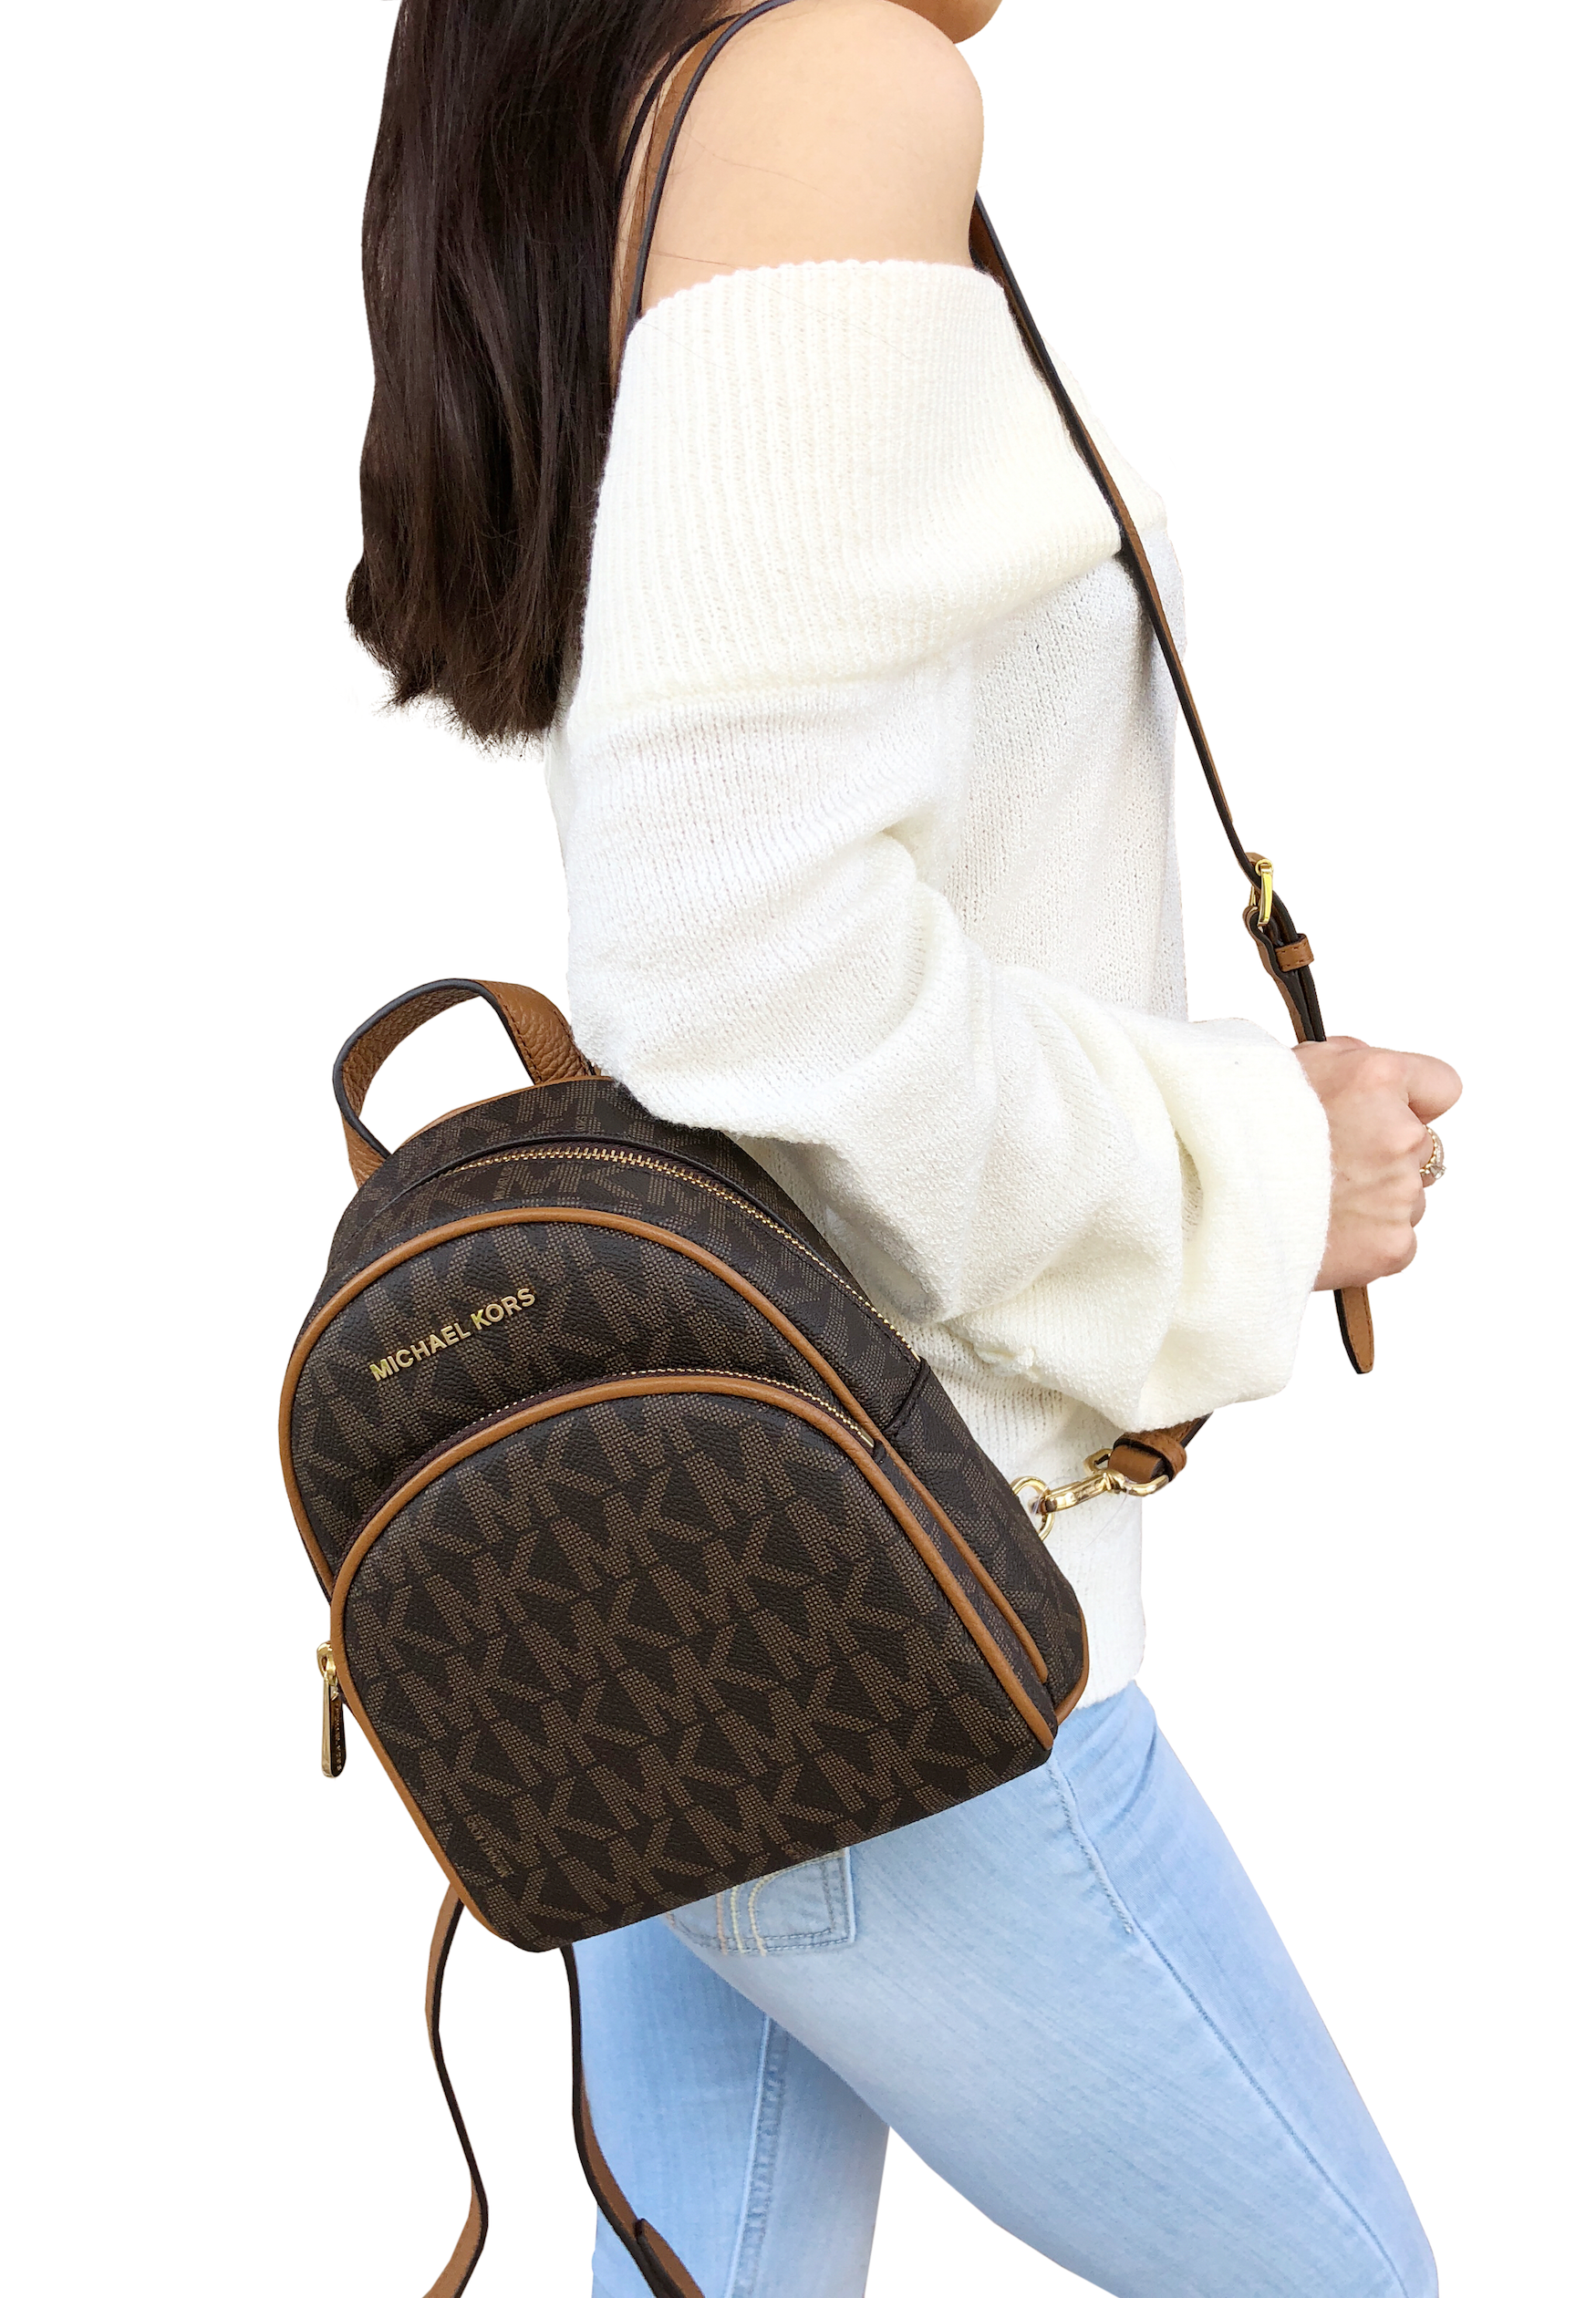 213f08c0e079 Michael Kors Abbey Mini Backpack Crossbody Brown MK Signature Acorn Extra  Small